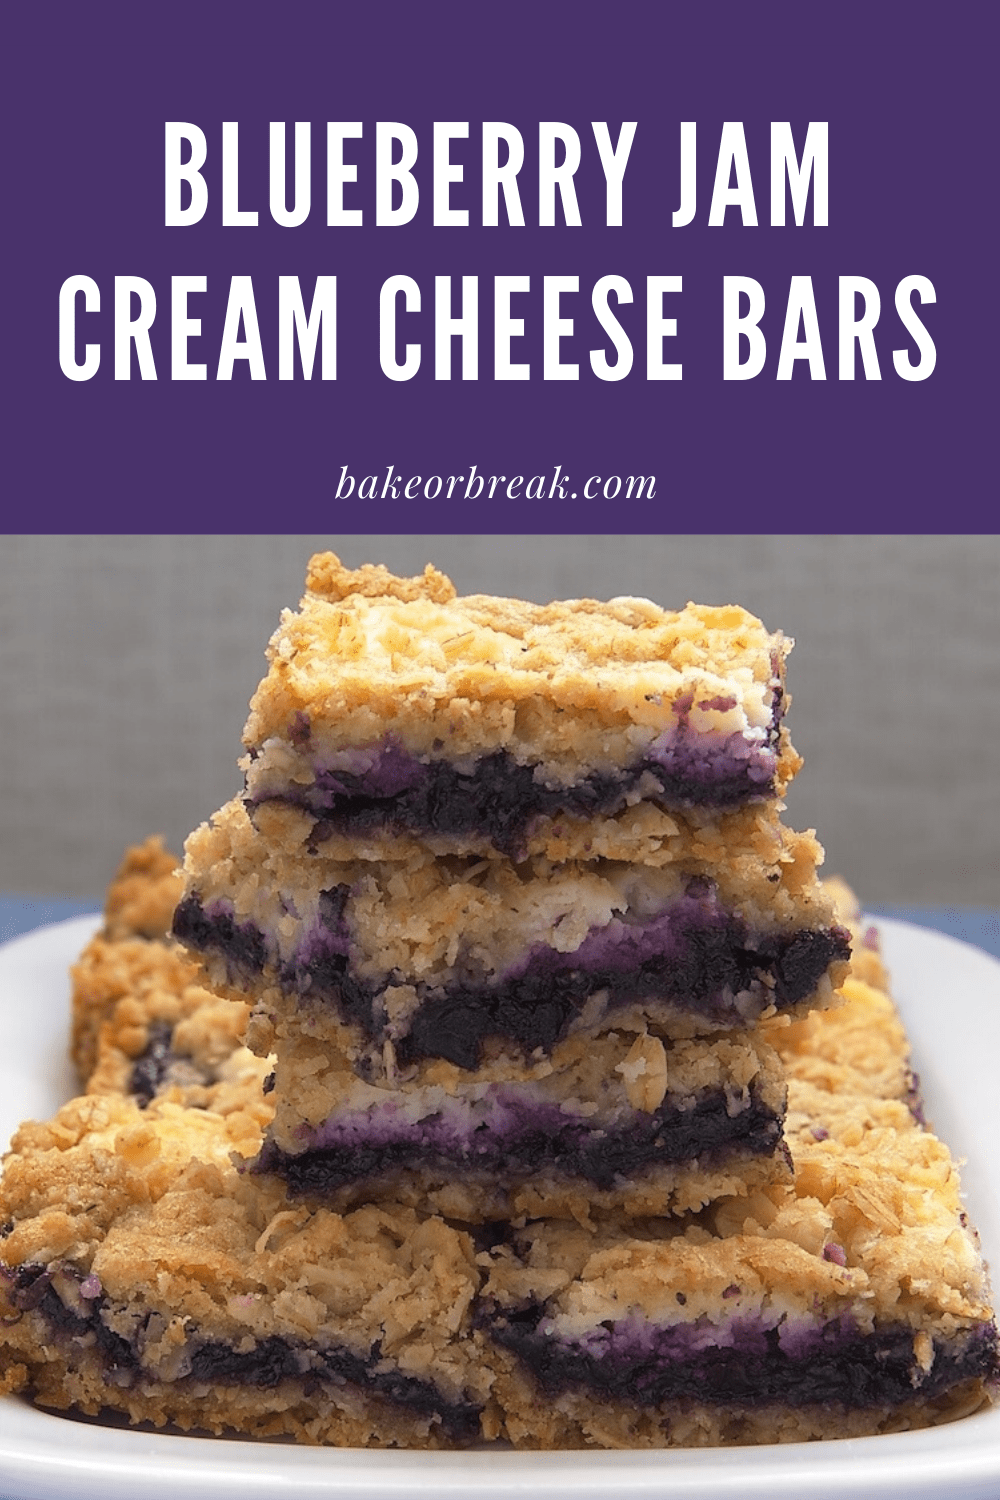 Blueberry Jam Cream Cheese Bars